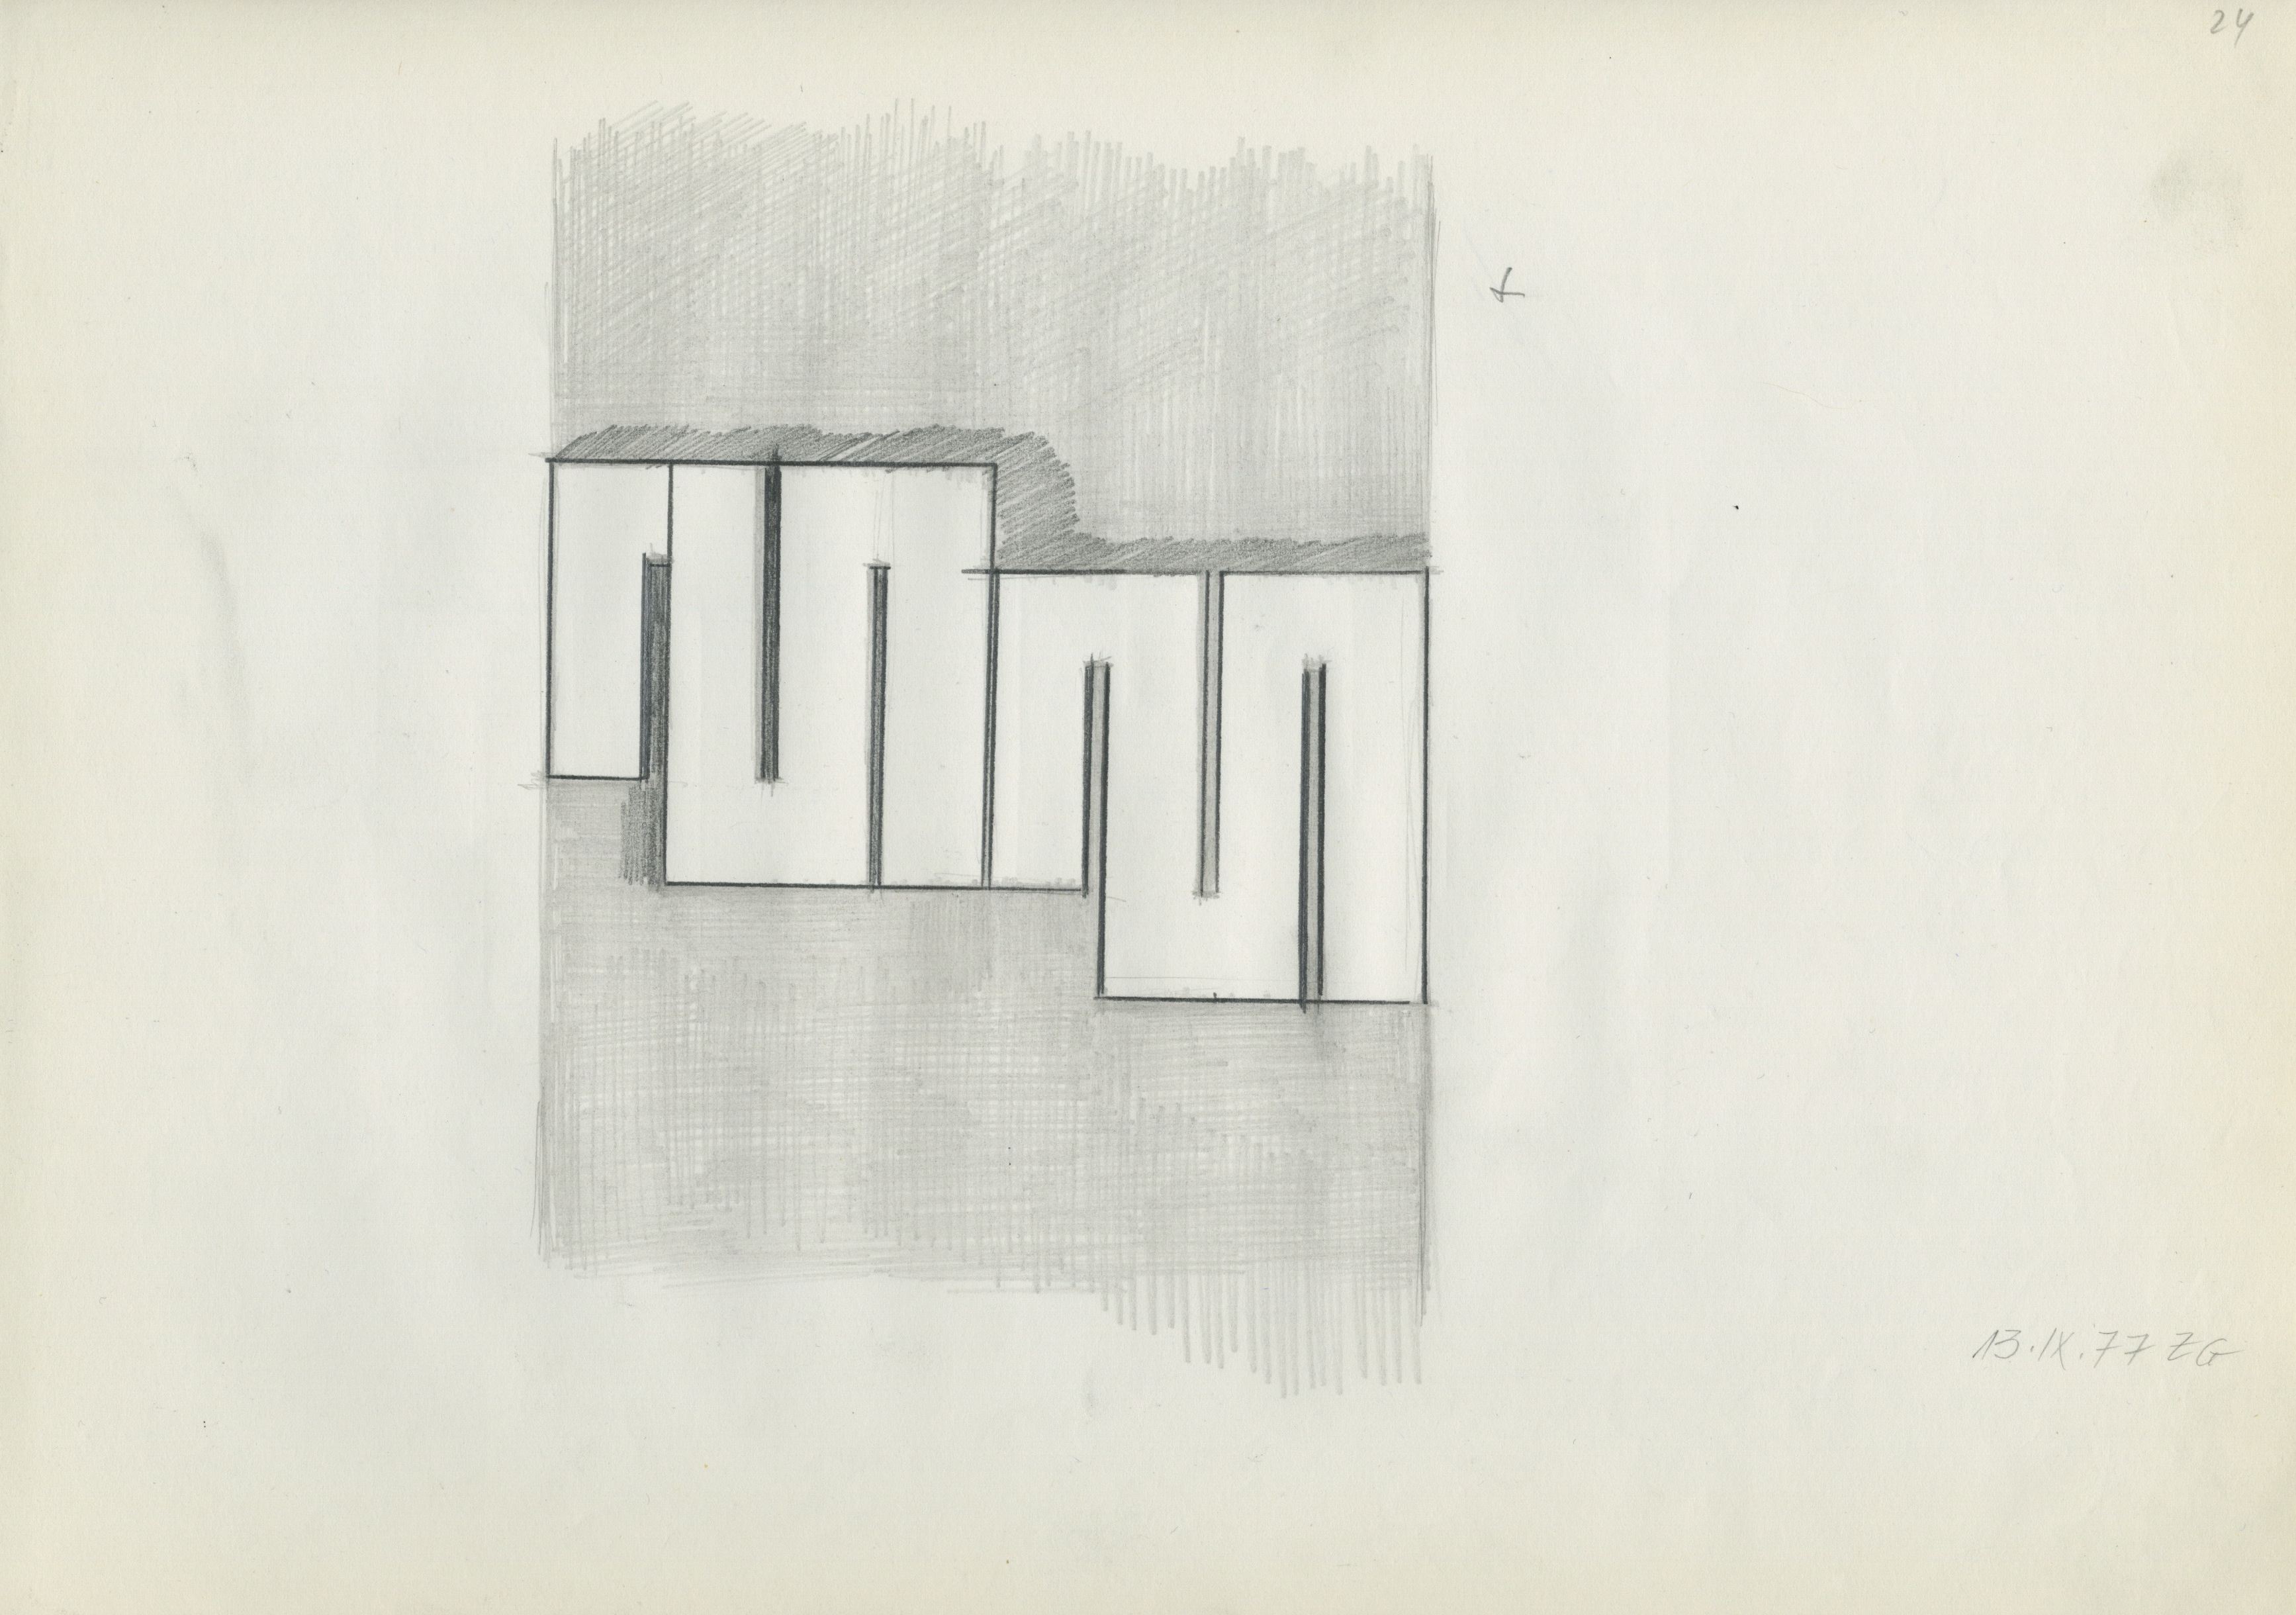 Untitled, 13 September 1977, pencil on paper, 21 x 29.7 cm, 1977